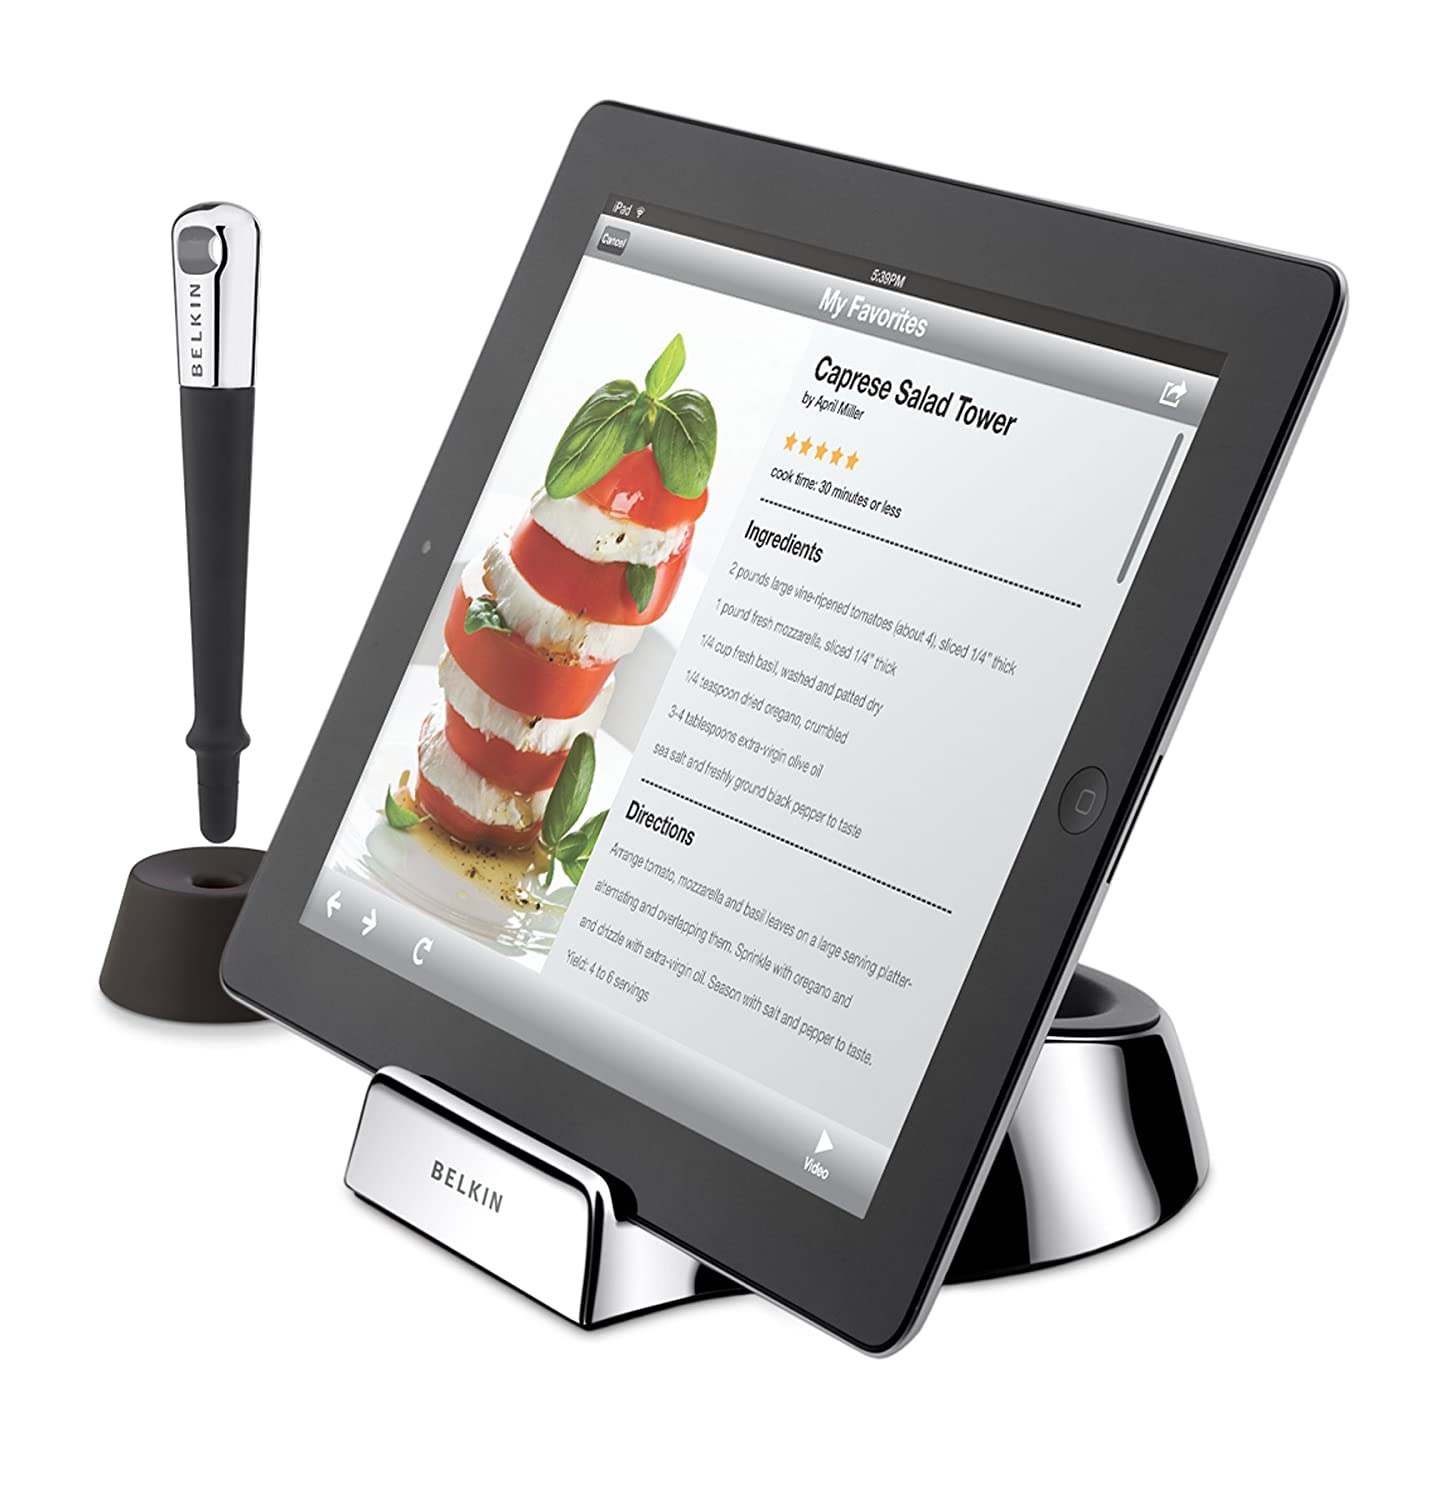 Amazon.com: Belkin Kitchen Stand and Wand / Stylus for Tablets: Computers &  Accessories